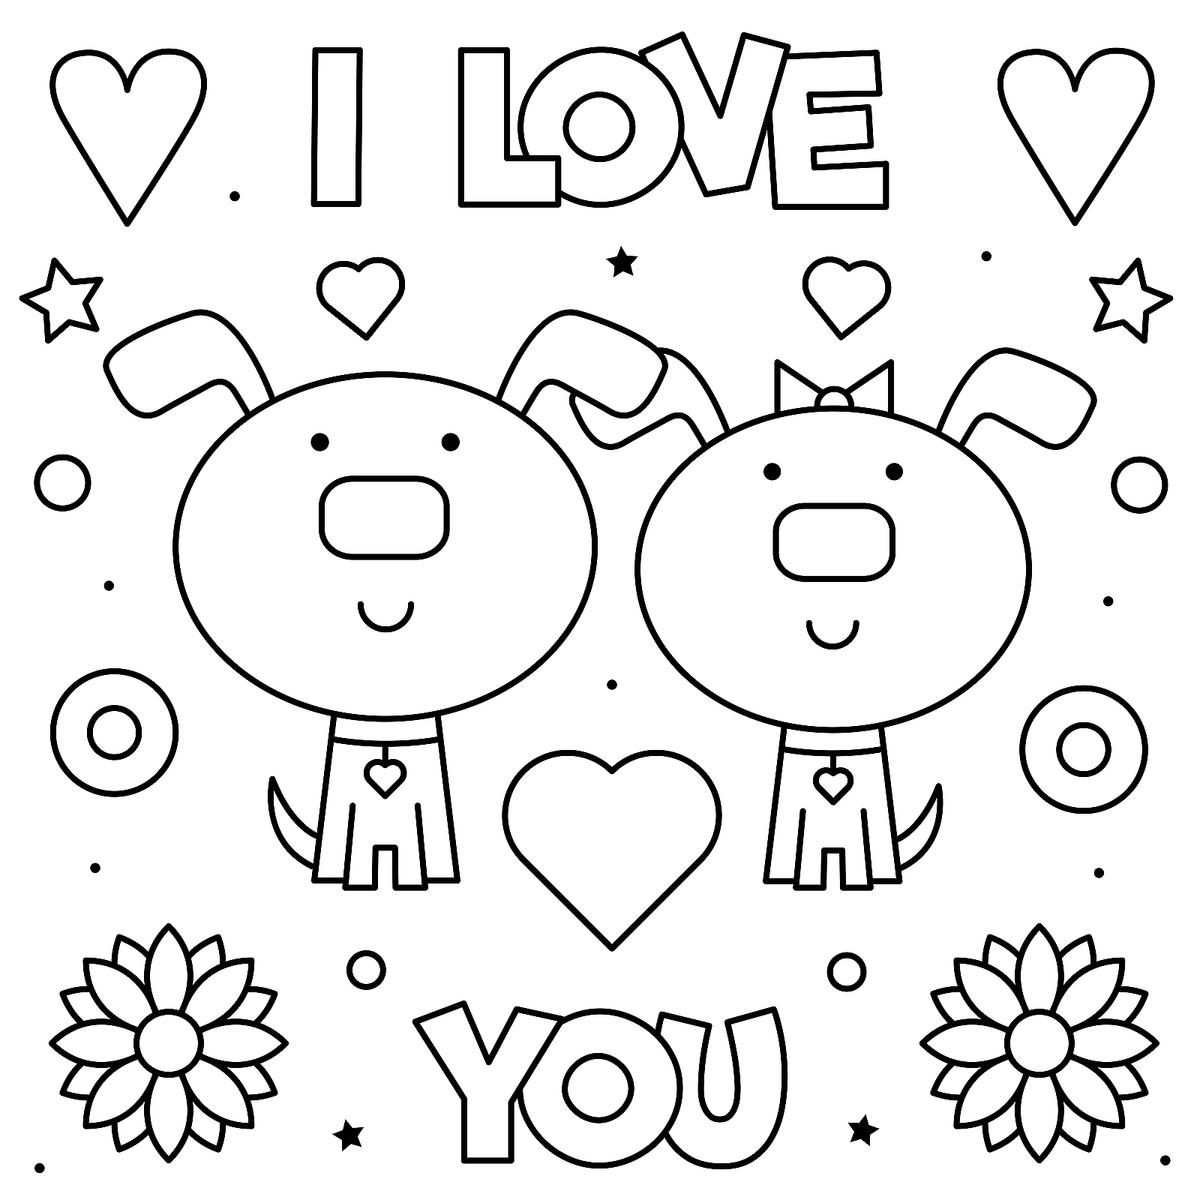 Valentine S Day Coloring Pages Heart Love Themed Coloring Pages For Kids Adults Printables 30seconds Mom